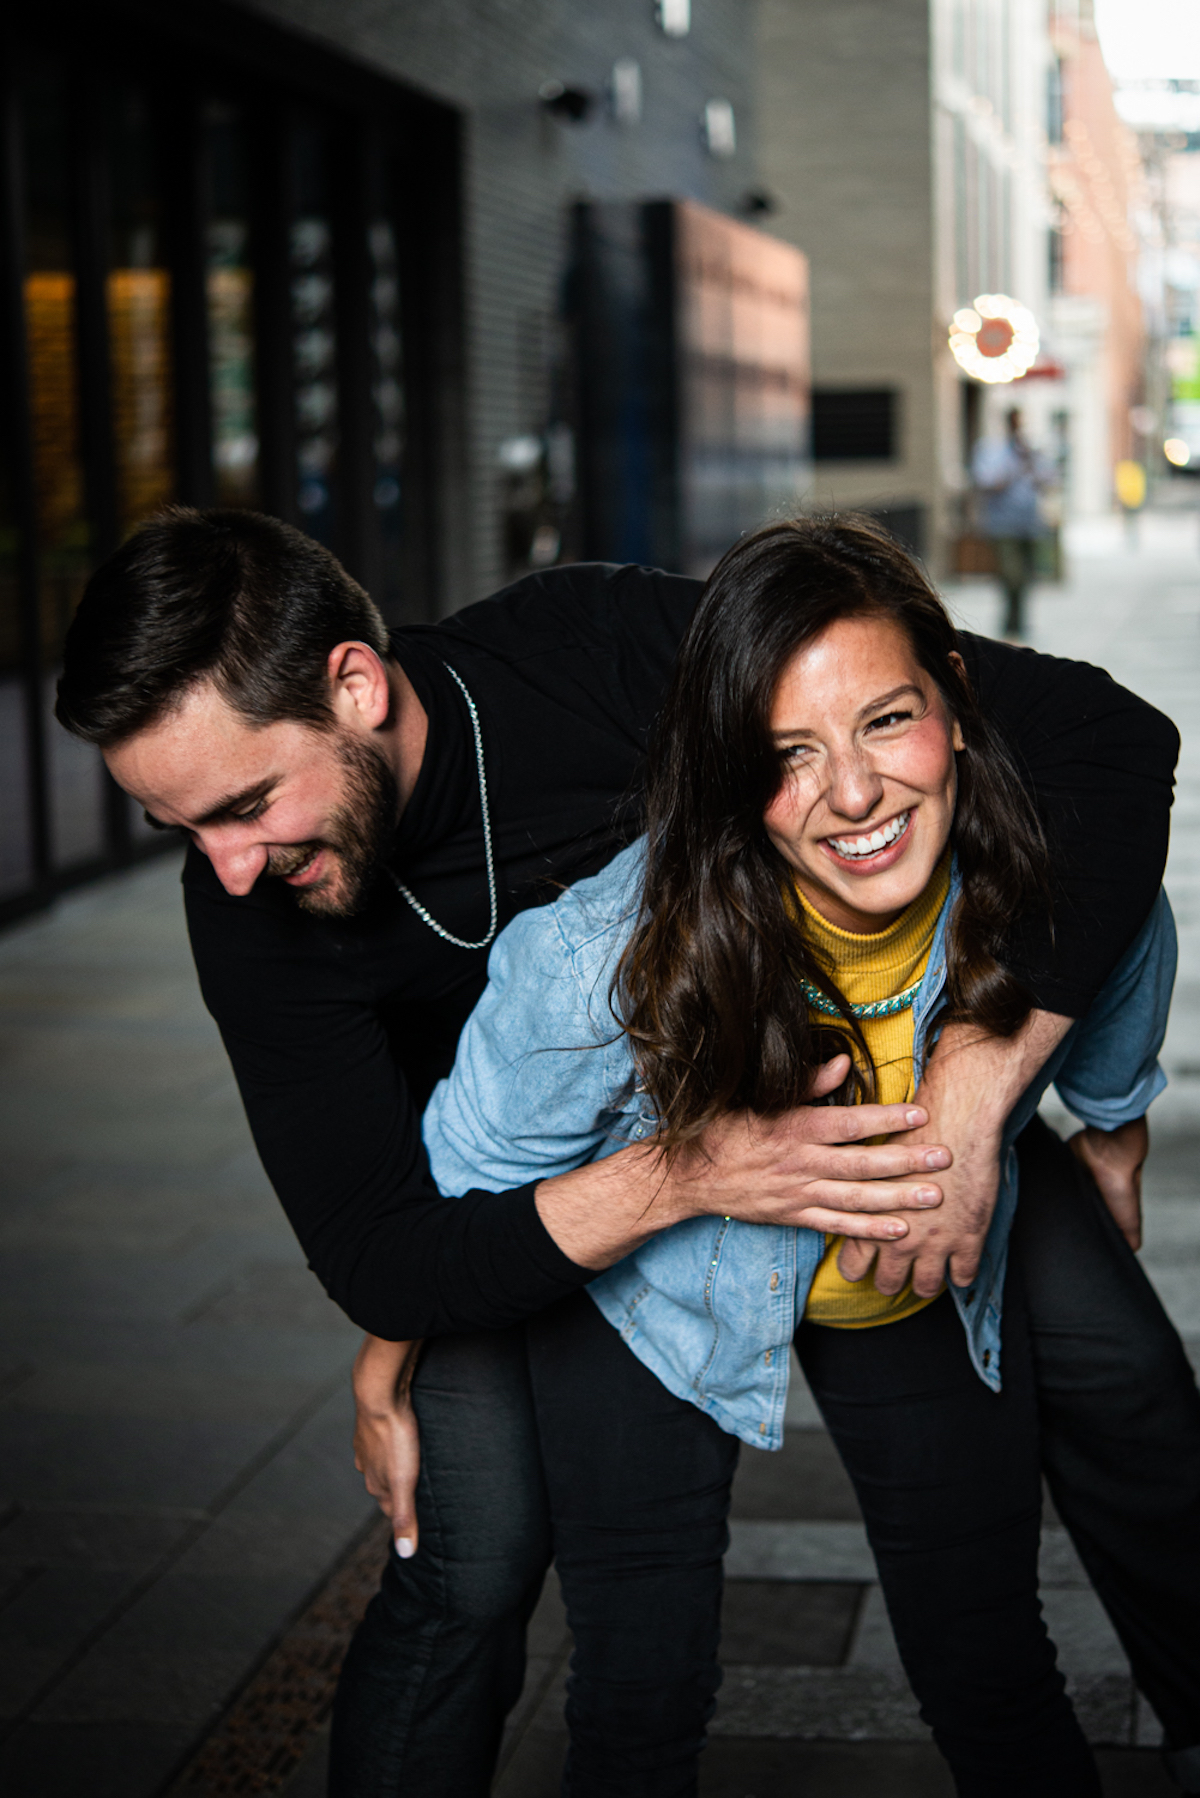 Young woman laughing as she tries to give boyfriend a piggyback ride